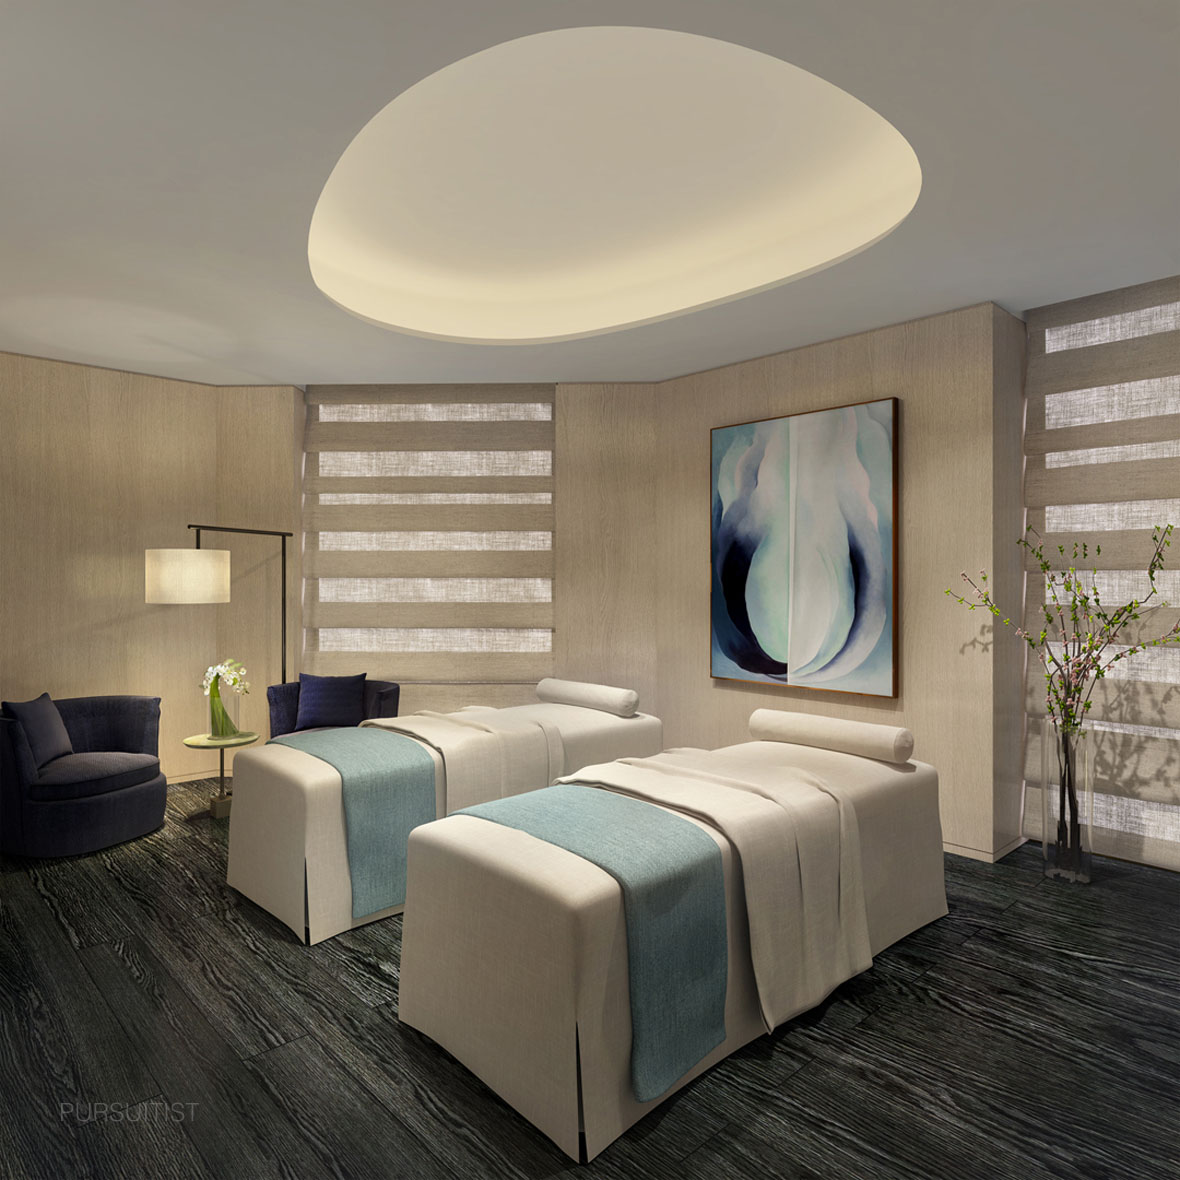 Four Seasons New York DowntownTreatment Room